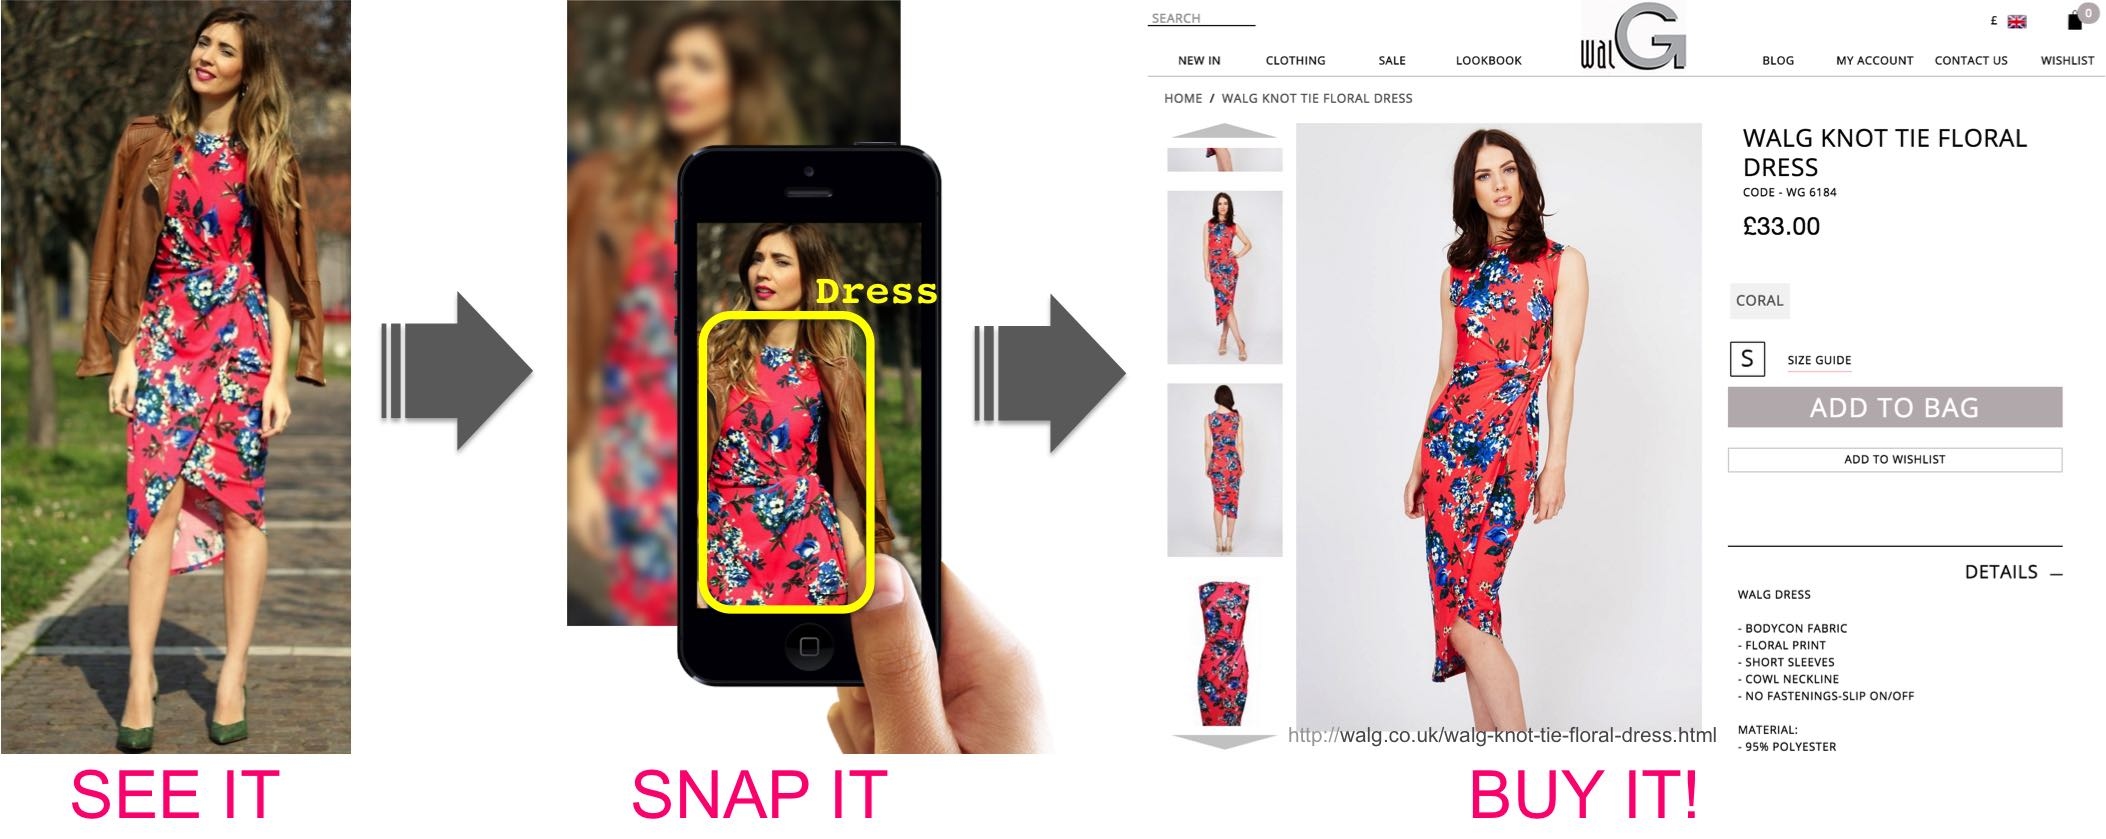 afc2e6093 Where to Buy It  Matching Street Clothing Photos in Online Shops